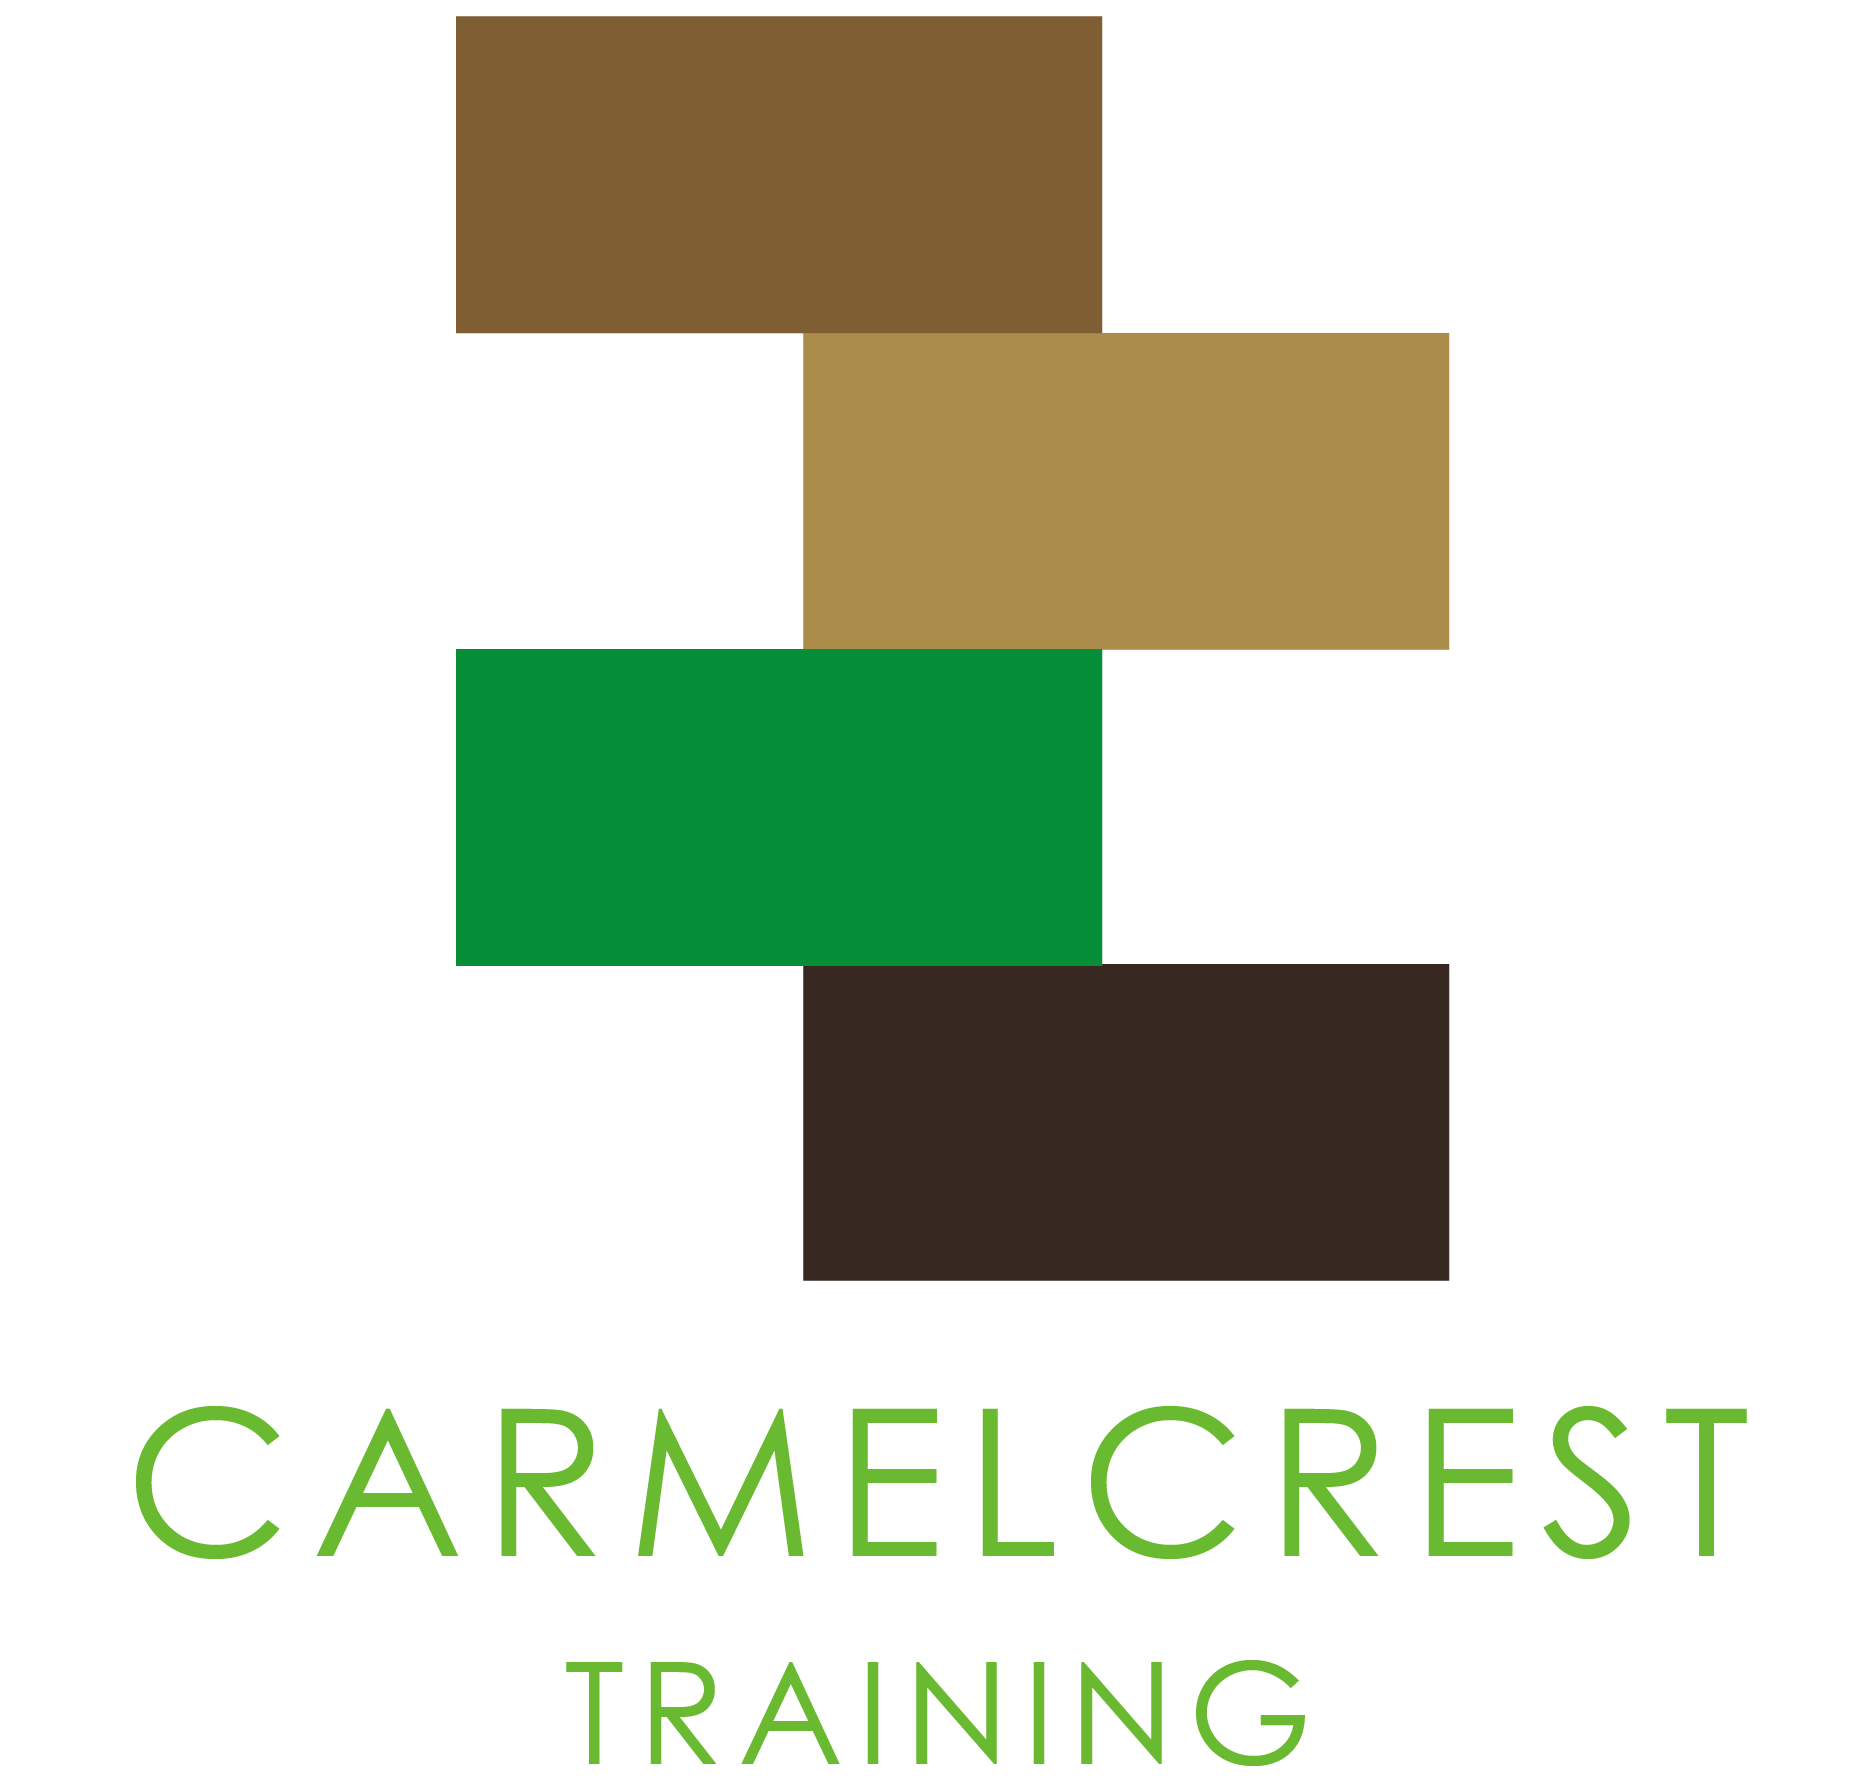 Carmelcrest Training